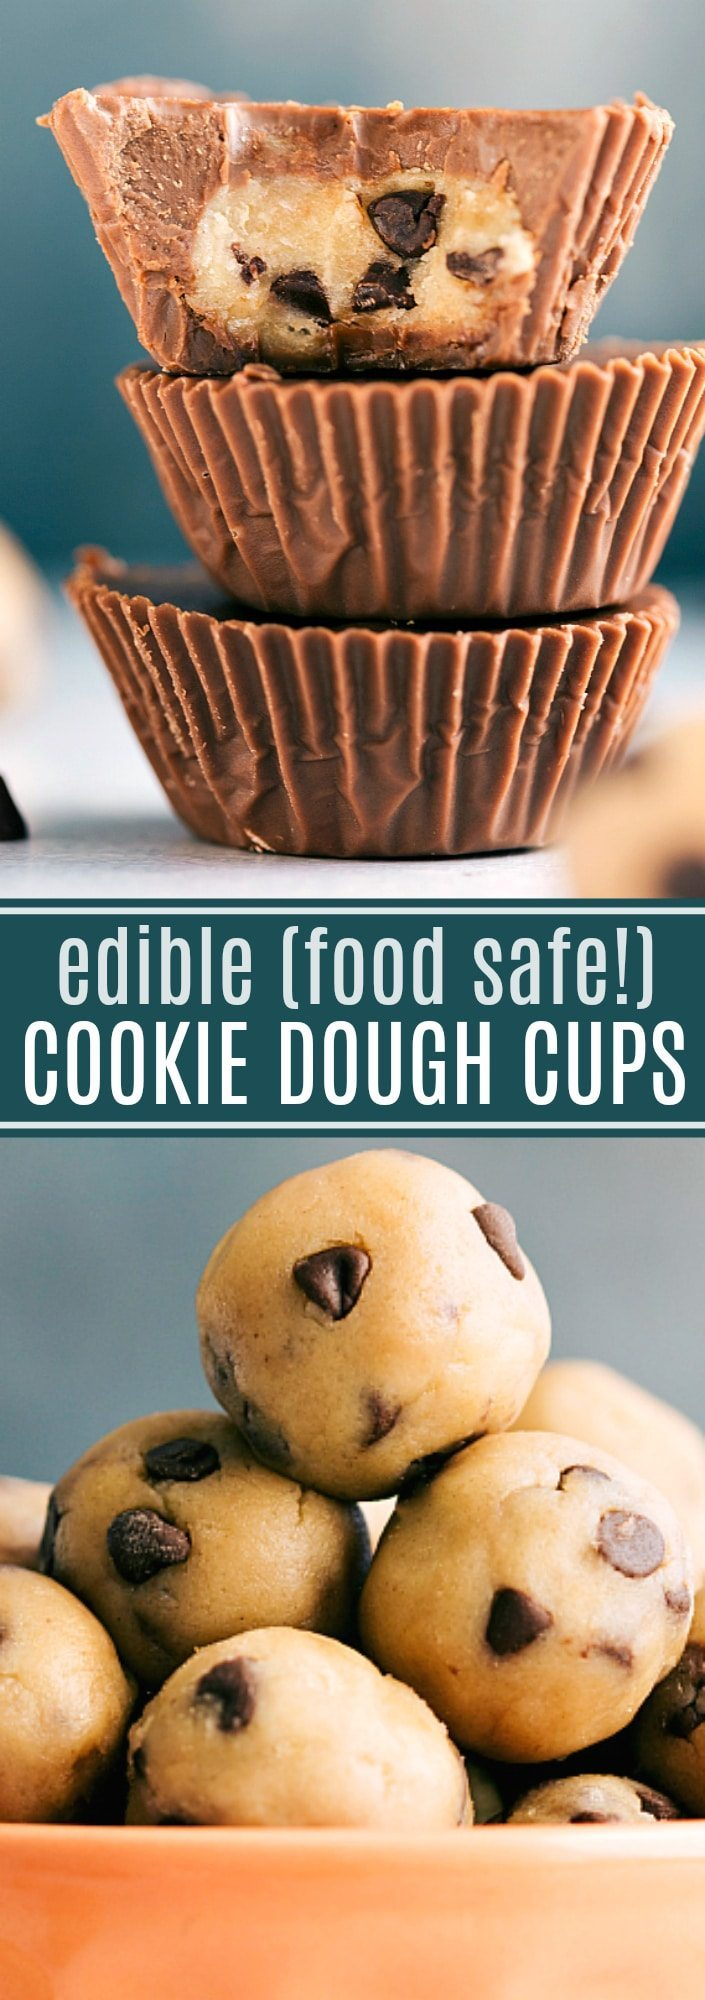 The ultimate BEST EVER edible cookie dough cups!! Completely food safe to eat (cooked flour and no raw eggs!) via chelseasmessyapron.com